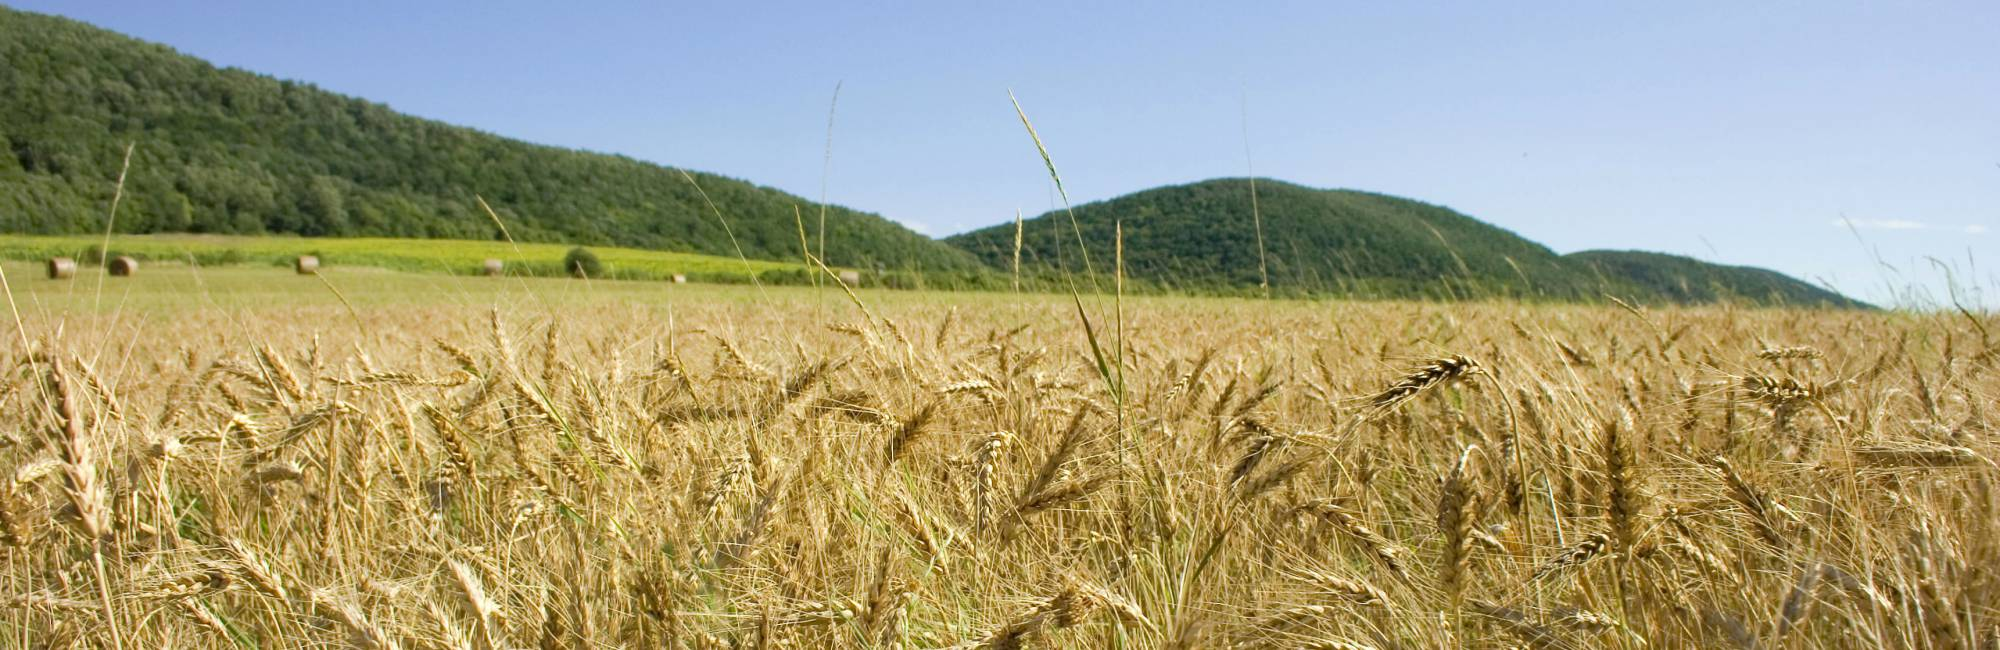 Wheat field in Hungary